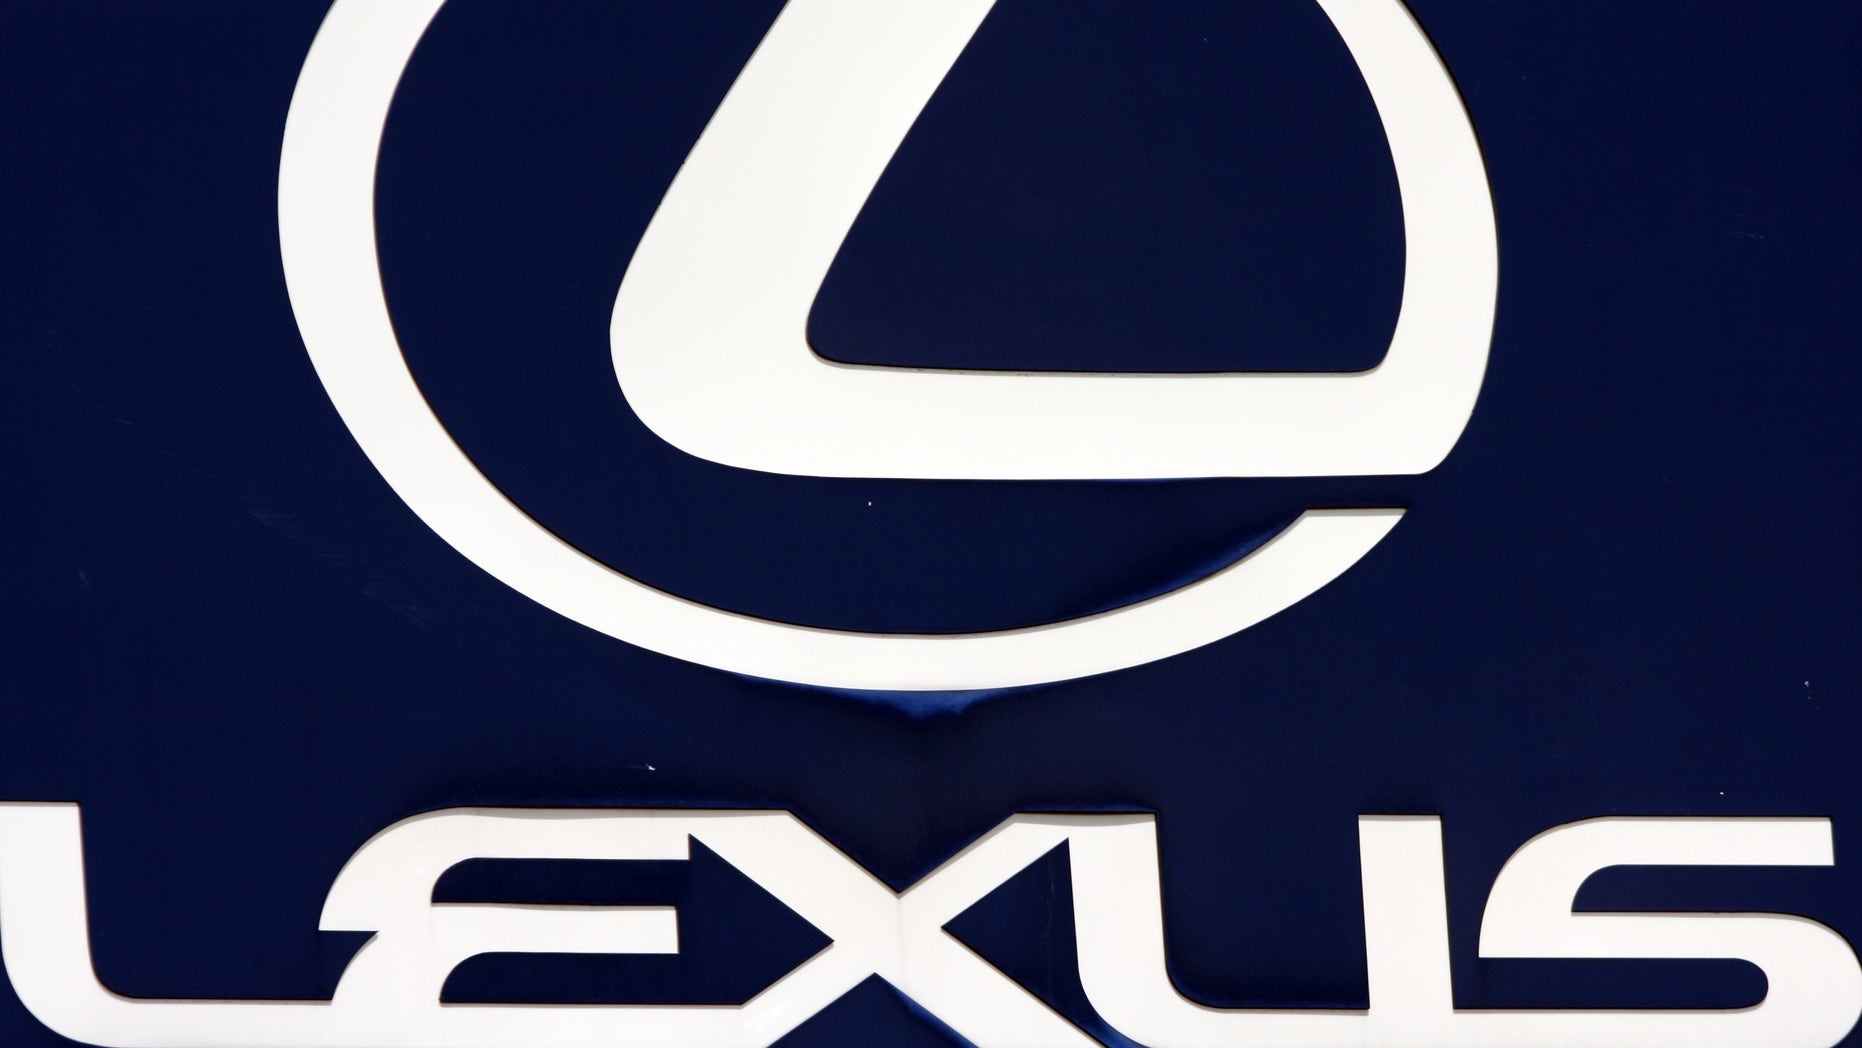 FILE - In this April 13, 2010 file photo, the Lexus logo is seen on a sign at a dealership in Portland, Maine. Toyota is recalling 907,000 vehicles, mostly Corolla models, around the world for faulty air bags and another 385,000 Lexus IS luxury cars for defective wipers. Toyota Motor Corp. spokesman Naoto Fuse said Wednesday, Jan. 30, 2013, there have been no accidents or injuries related to either of those defects, but the Japanese automaker received 46 reports of problems involving the air bags from North America, and one from Japan. There were 25 reports of problems related to the windshield wipers. (AP Photo/Pat Wellenbach, File)